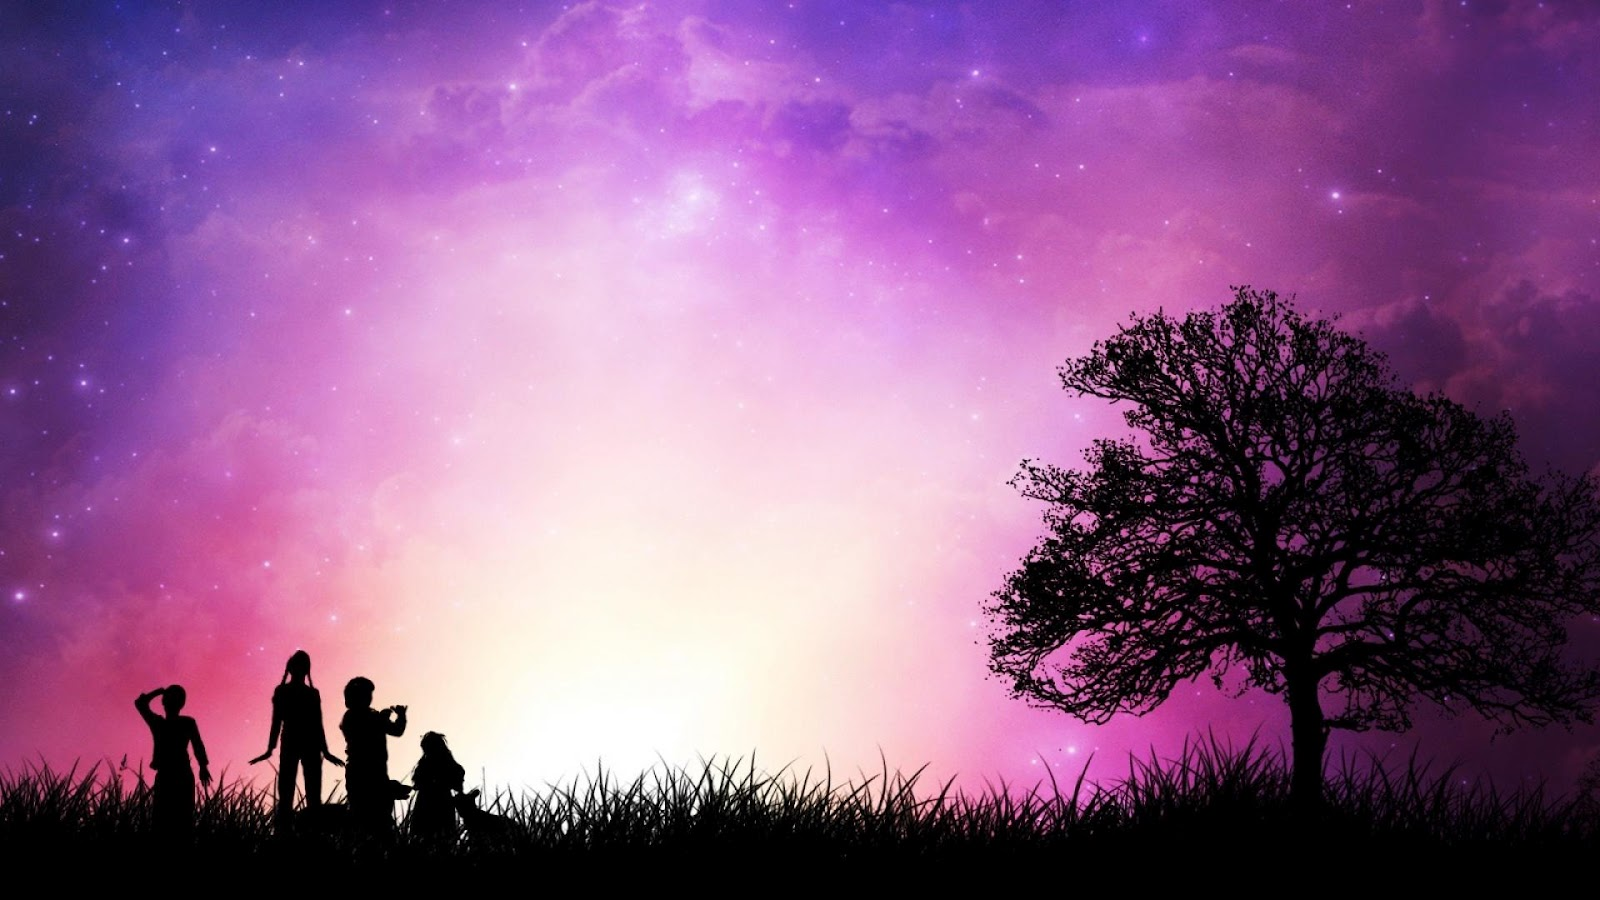 Love Wallpapers Blogspot : Romantic Wallpapers HD Pictures HD Wallpapers ...